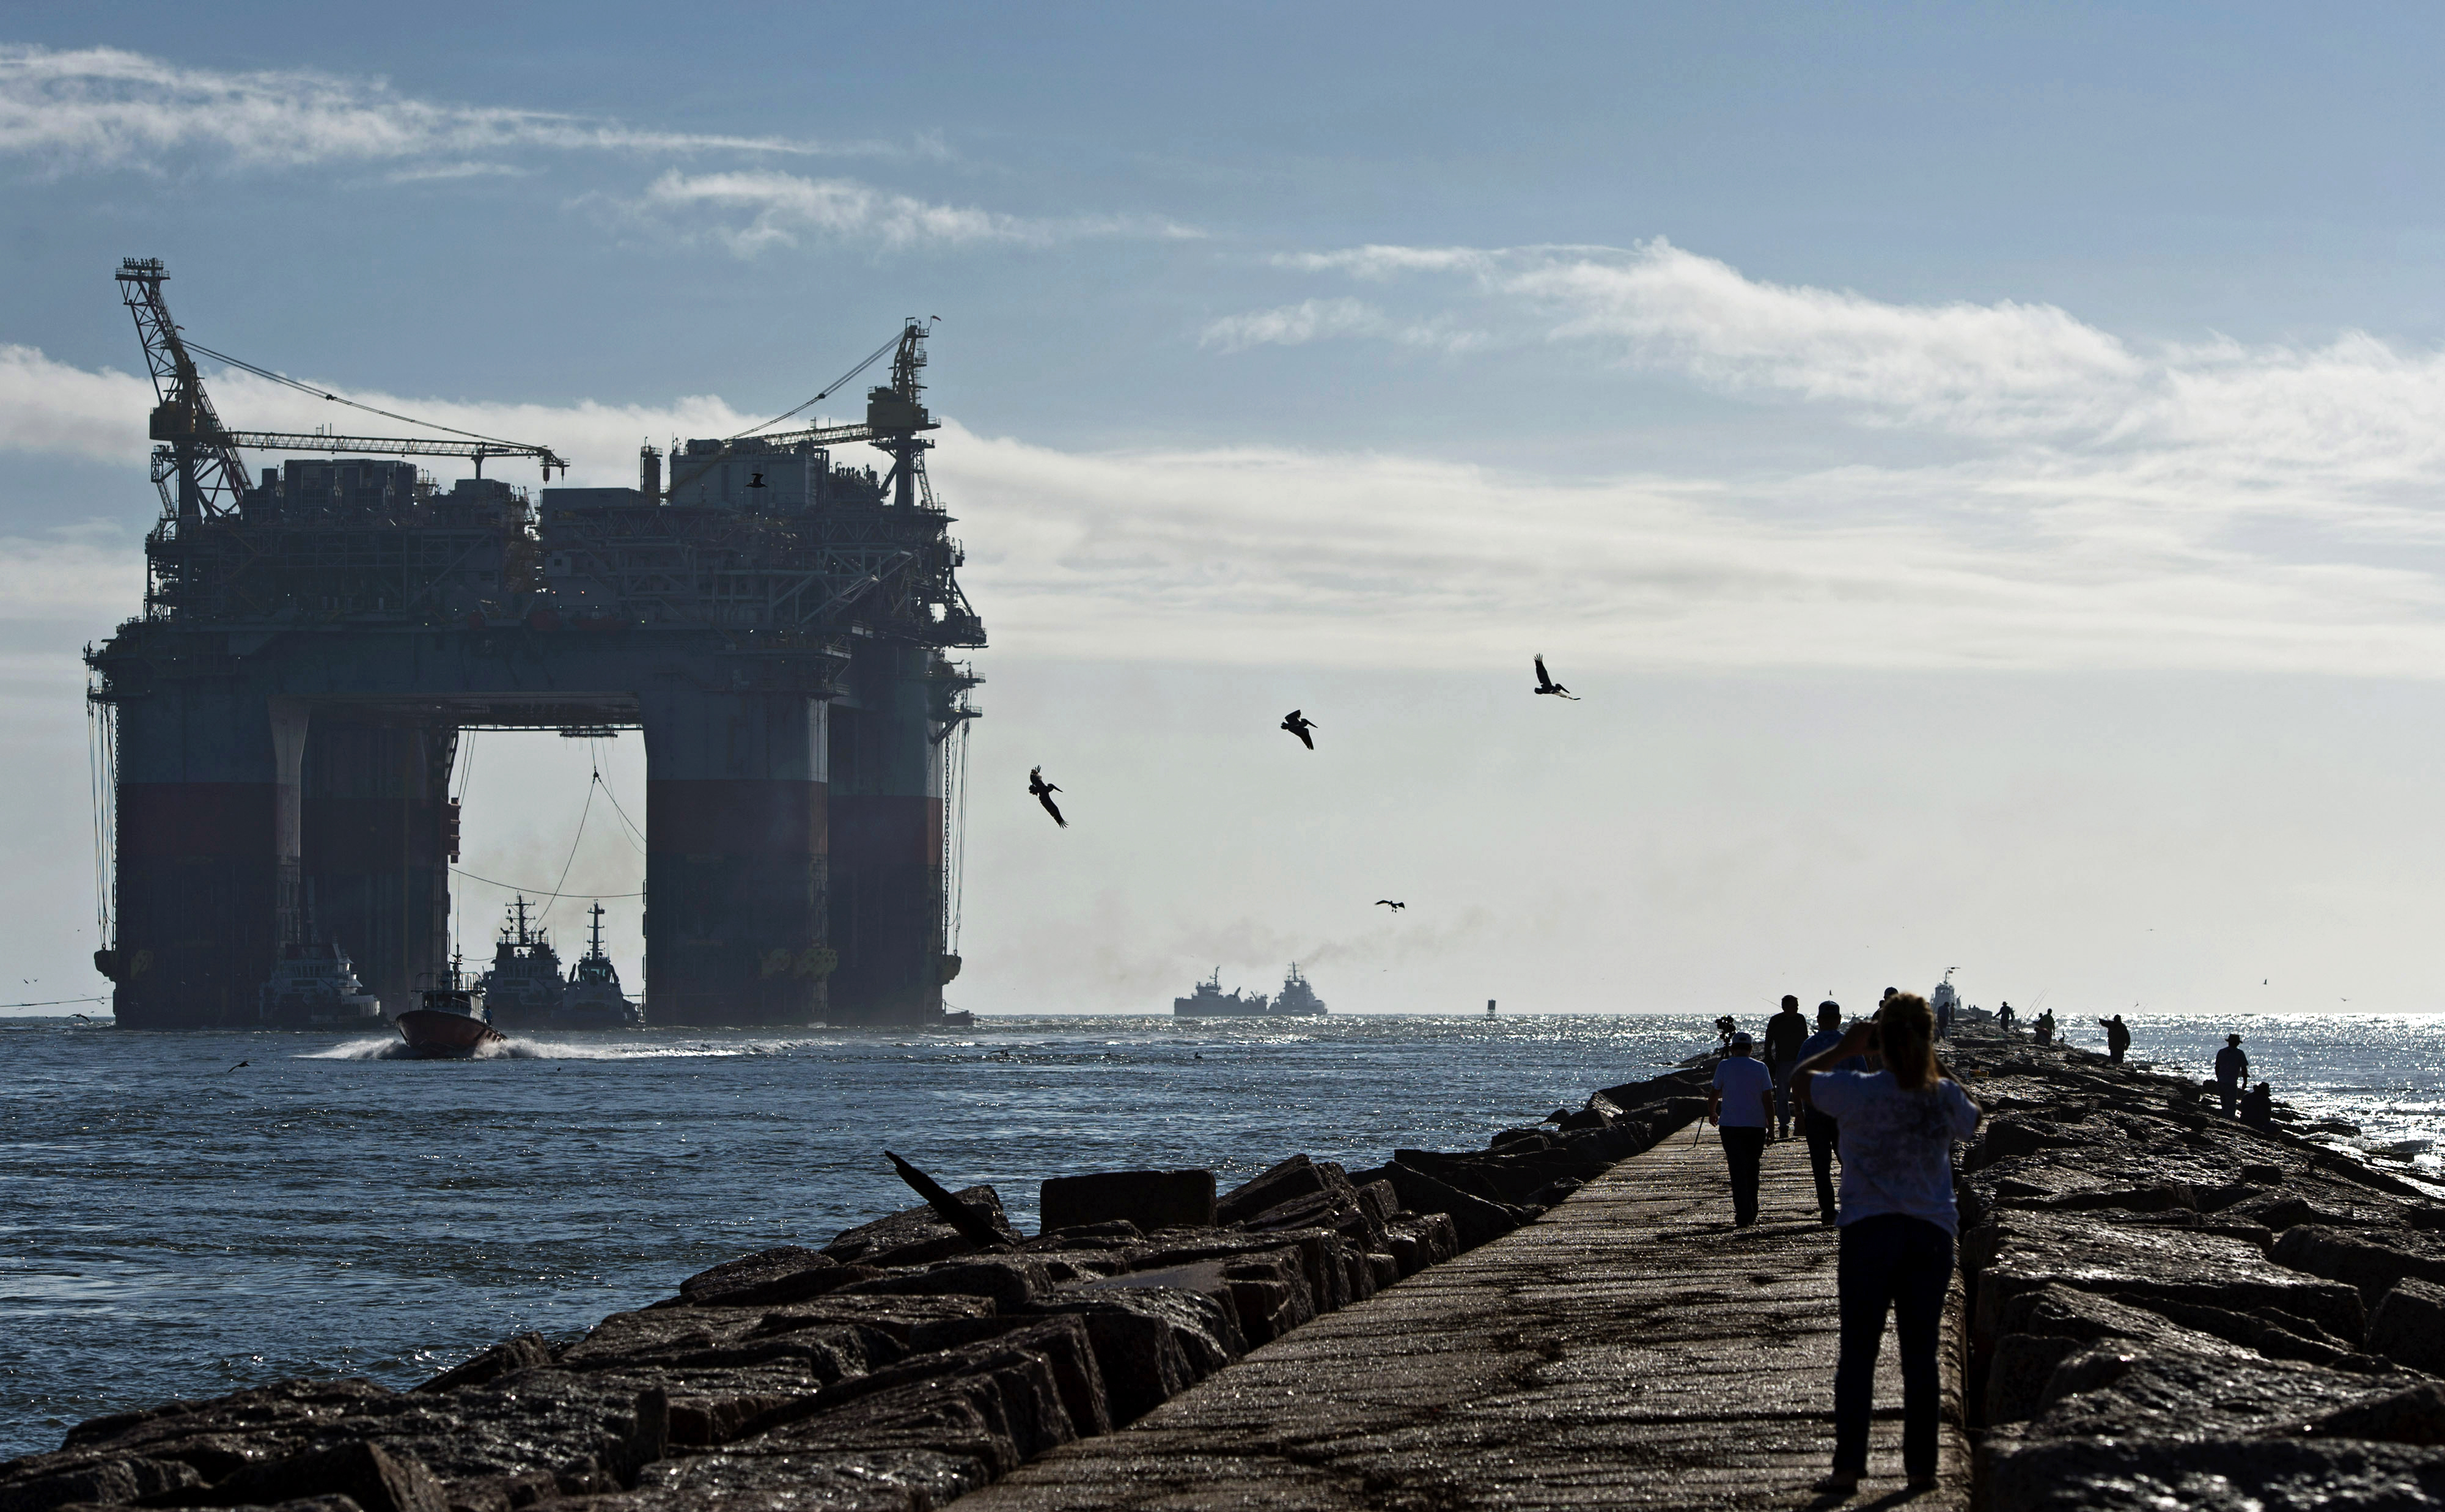 Birds fly as pedestrians watch tug boats transport the Chevron Corp. Jack St. Malo semi-submersible drilling and production platform to the Gulf of Mexico from Kiewit Offshore Services in Ingleside, Texas, U.S., on Nov. 15, 2013.